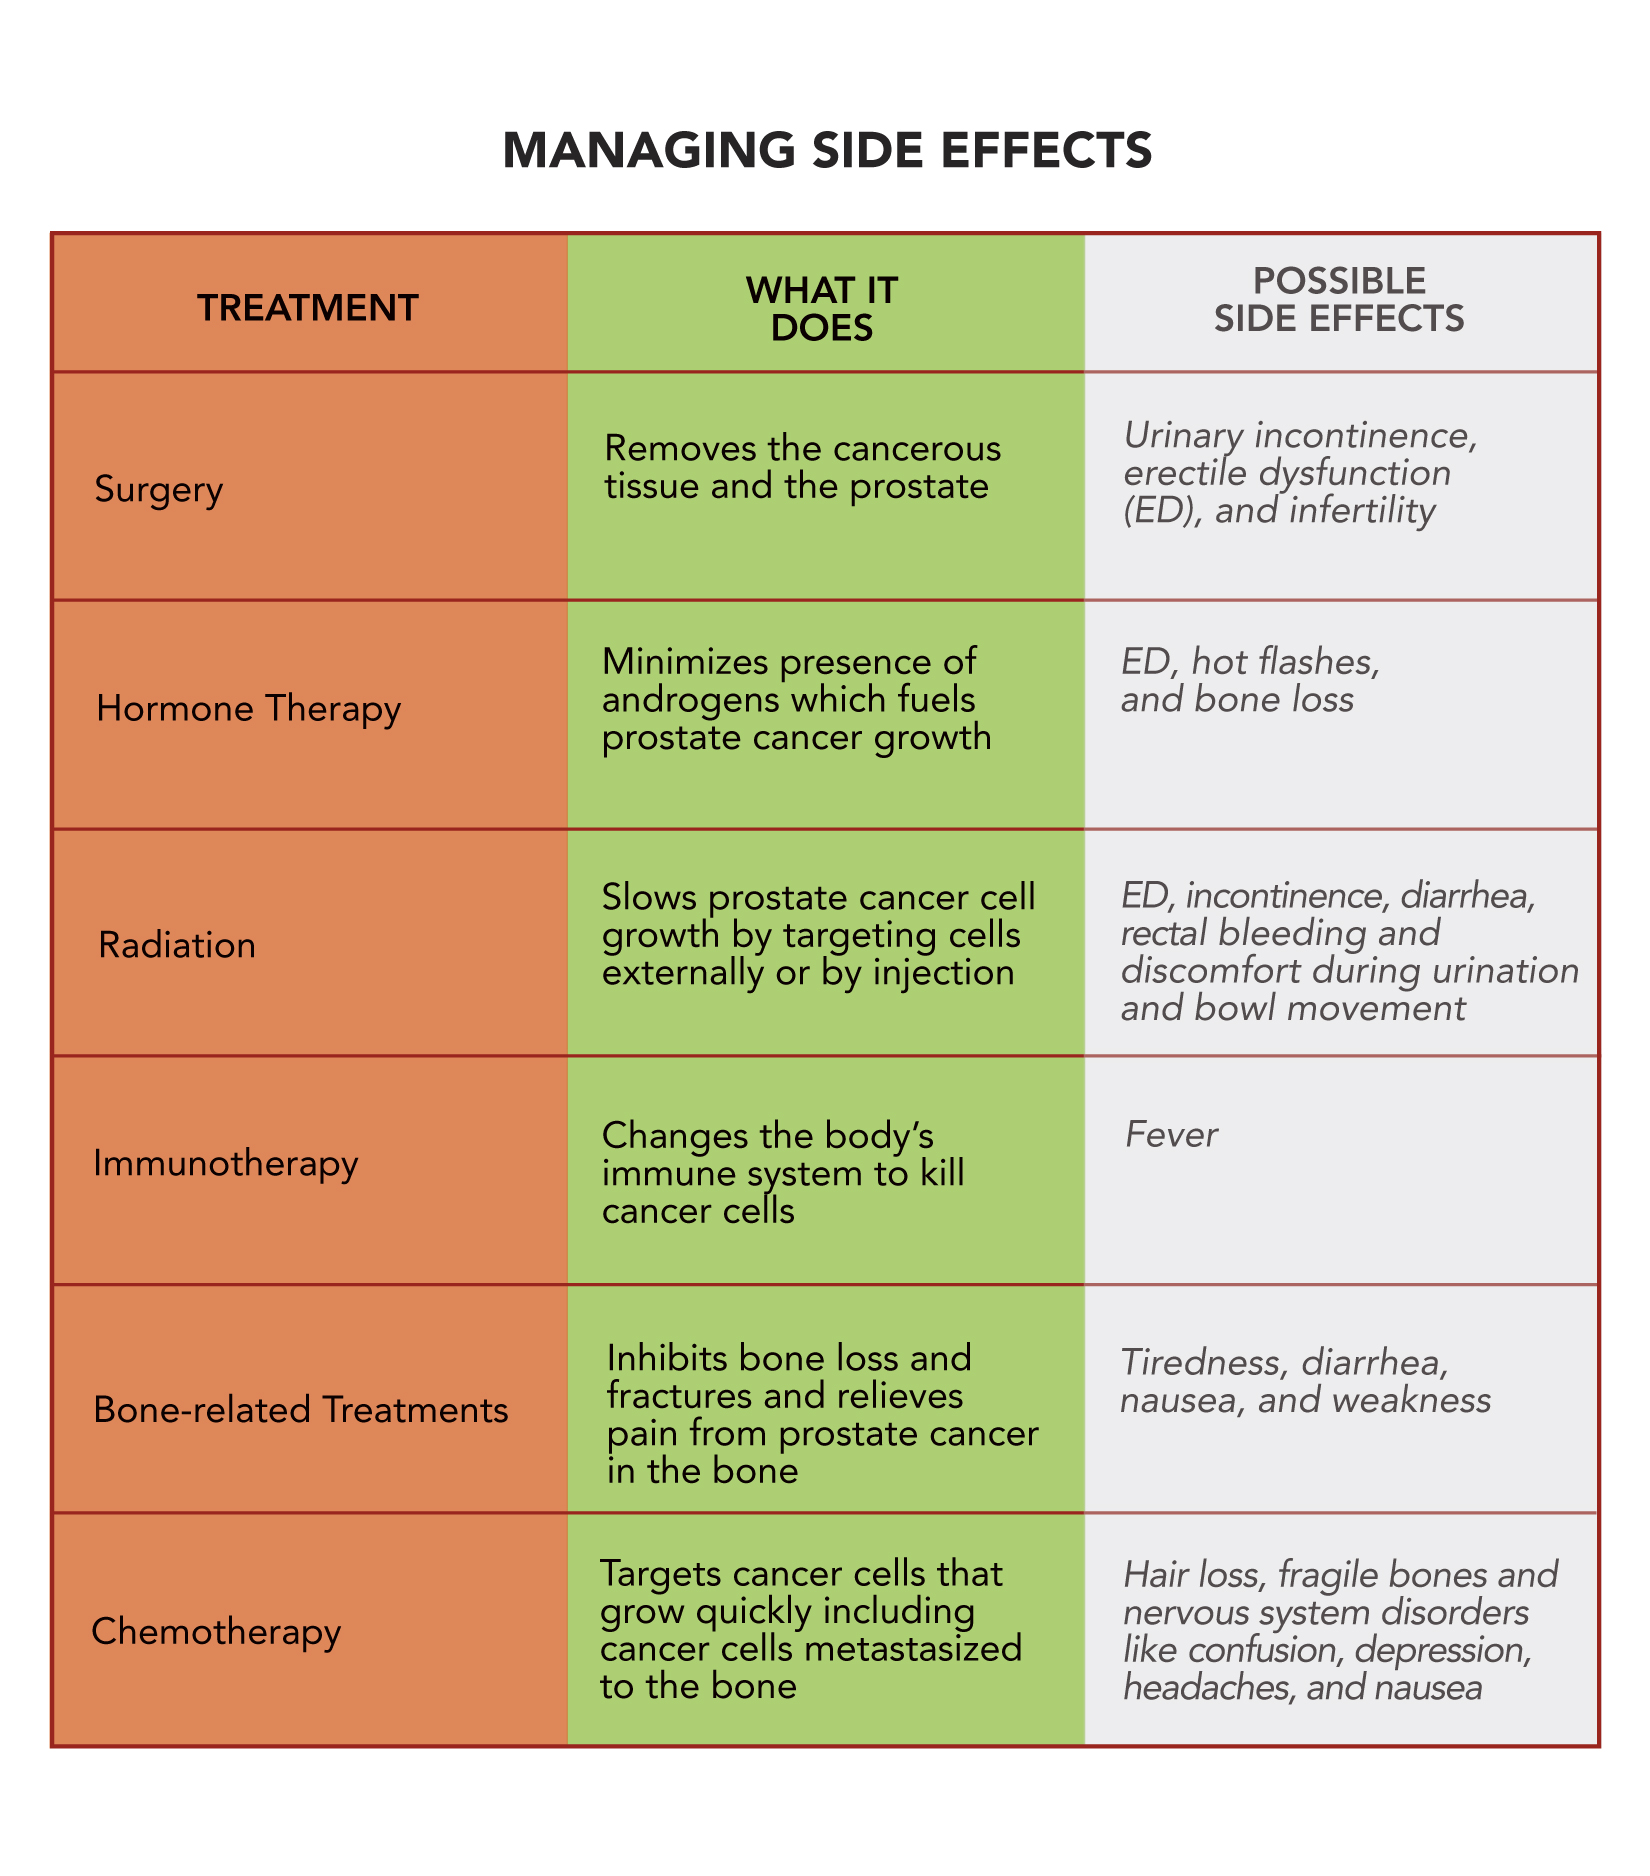 Side Effects By Treatment